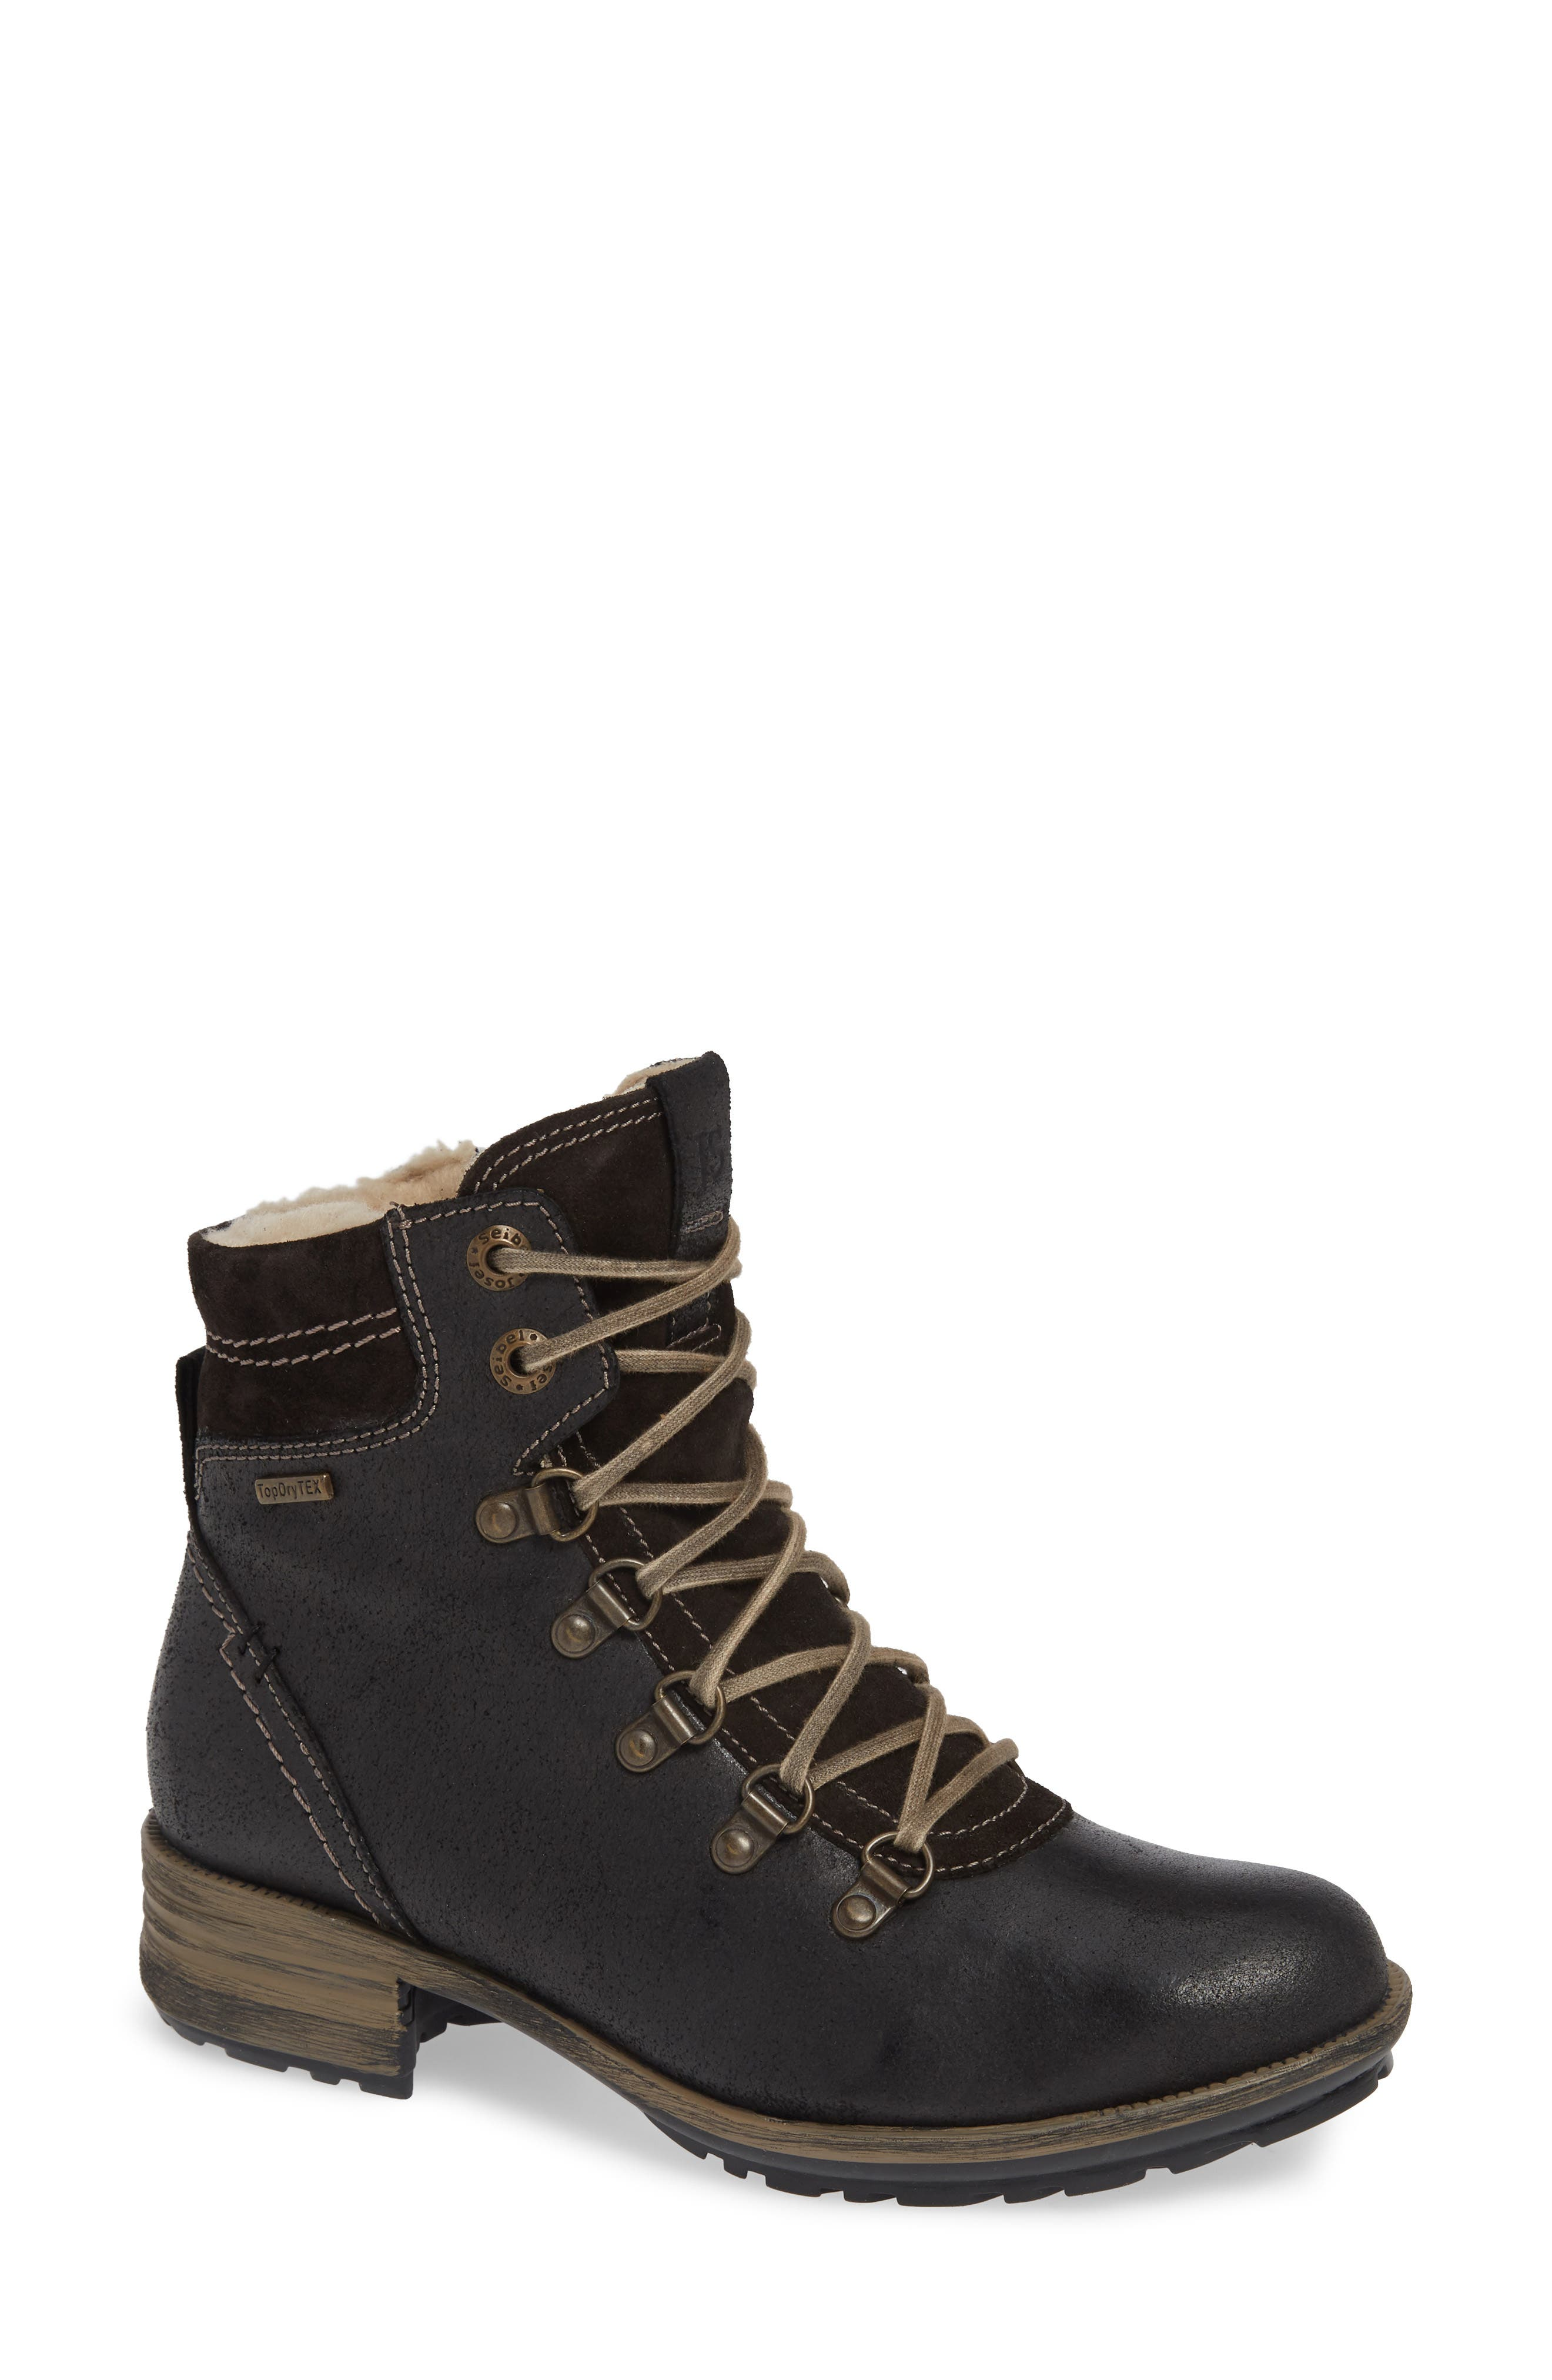 Josef Seibel Sandra 66 Waterproof Lace-Up Bootie, Black